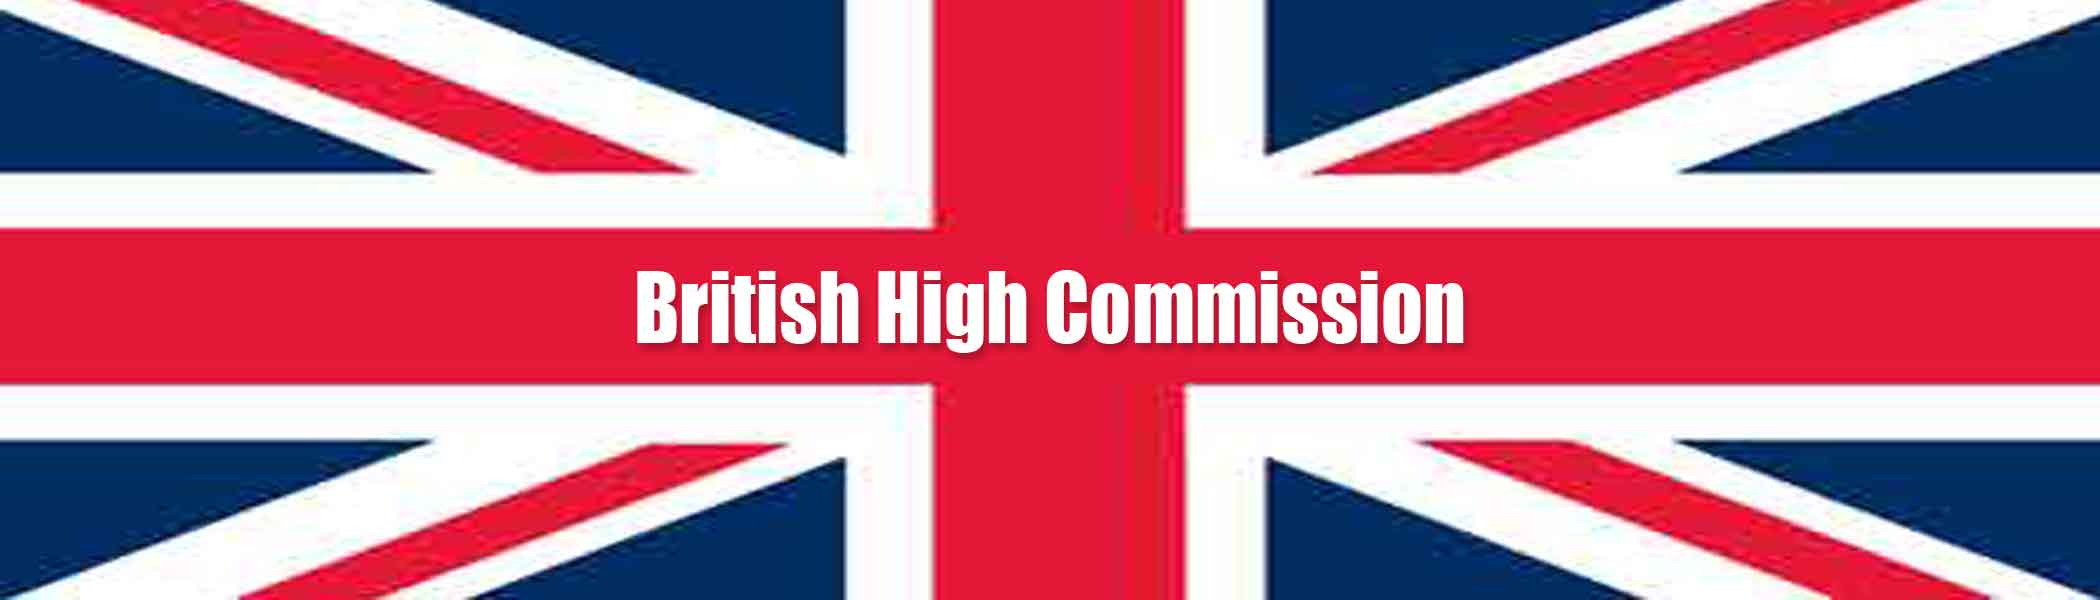 british-high-commission, Embassies in Seychelles Islands